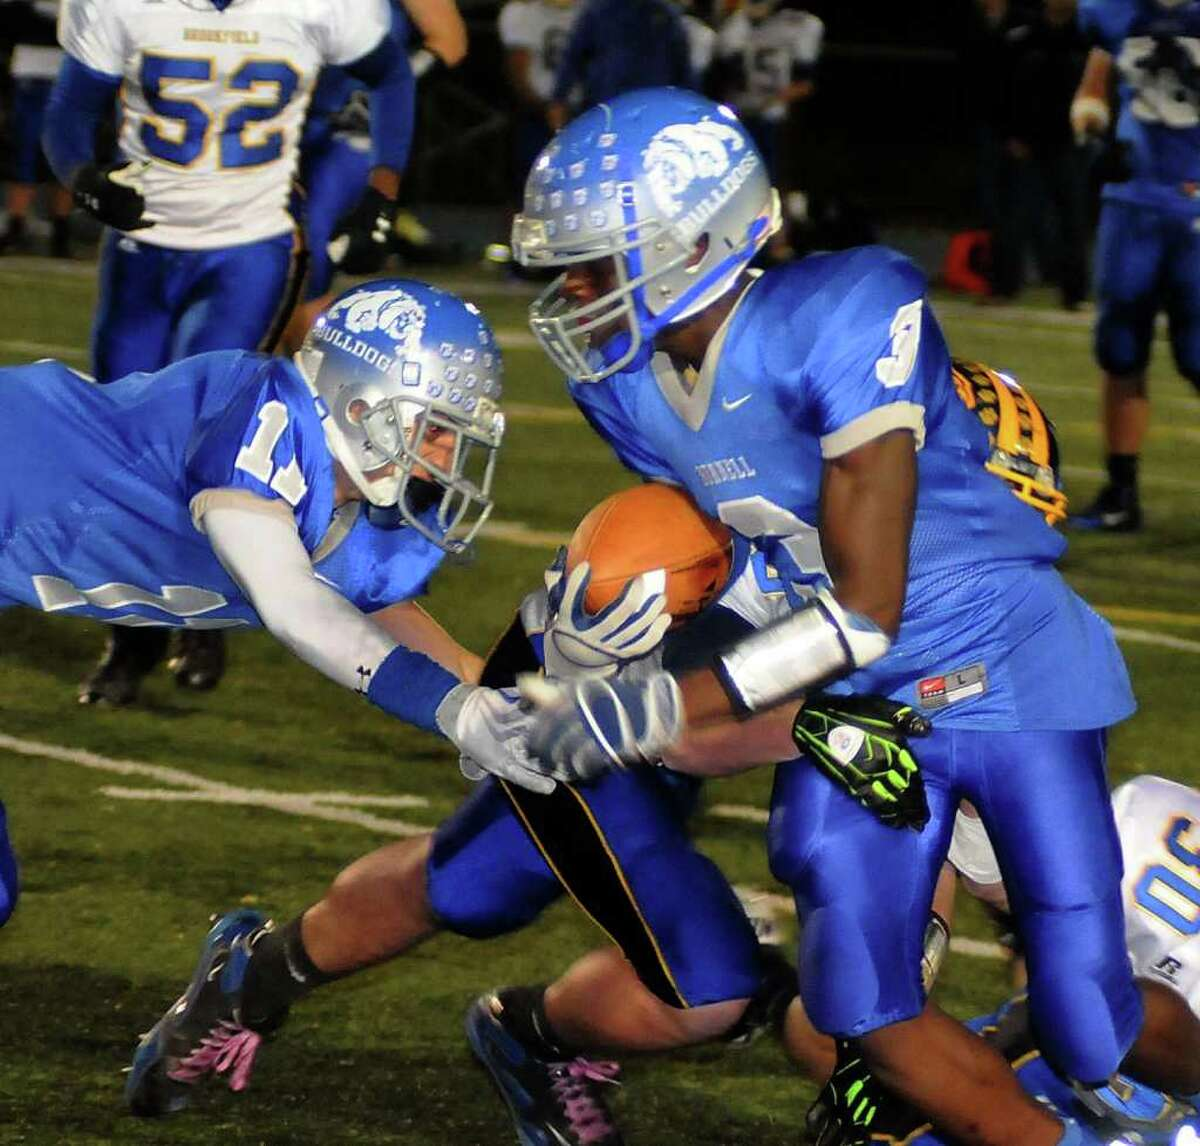 Bunnell's Terrence N'Dabian, right, has possession of the ball while Bunnell's Jared Vasquez defends during a game against Brookfield High School at Bunnell on Friday evening Oct. 21, 2011.